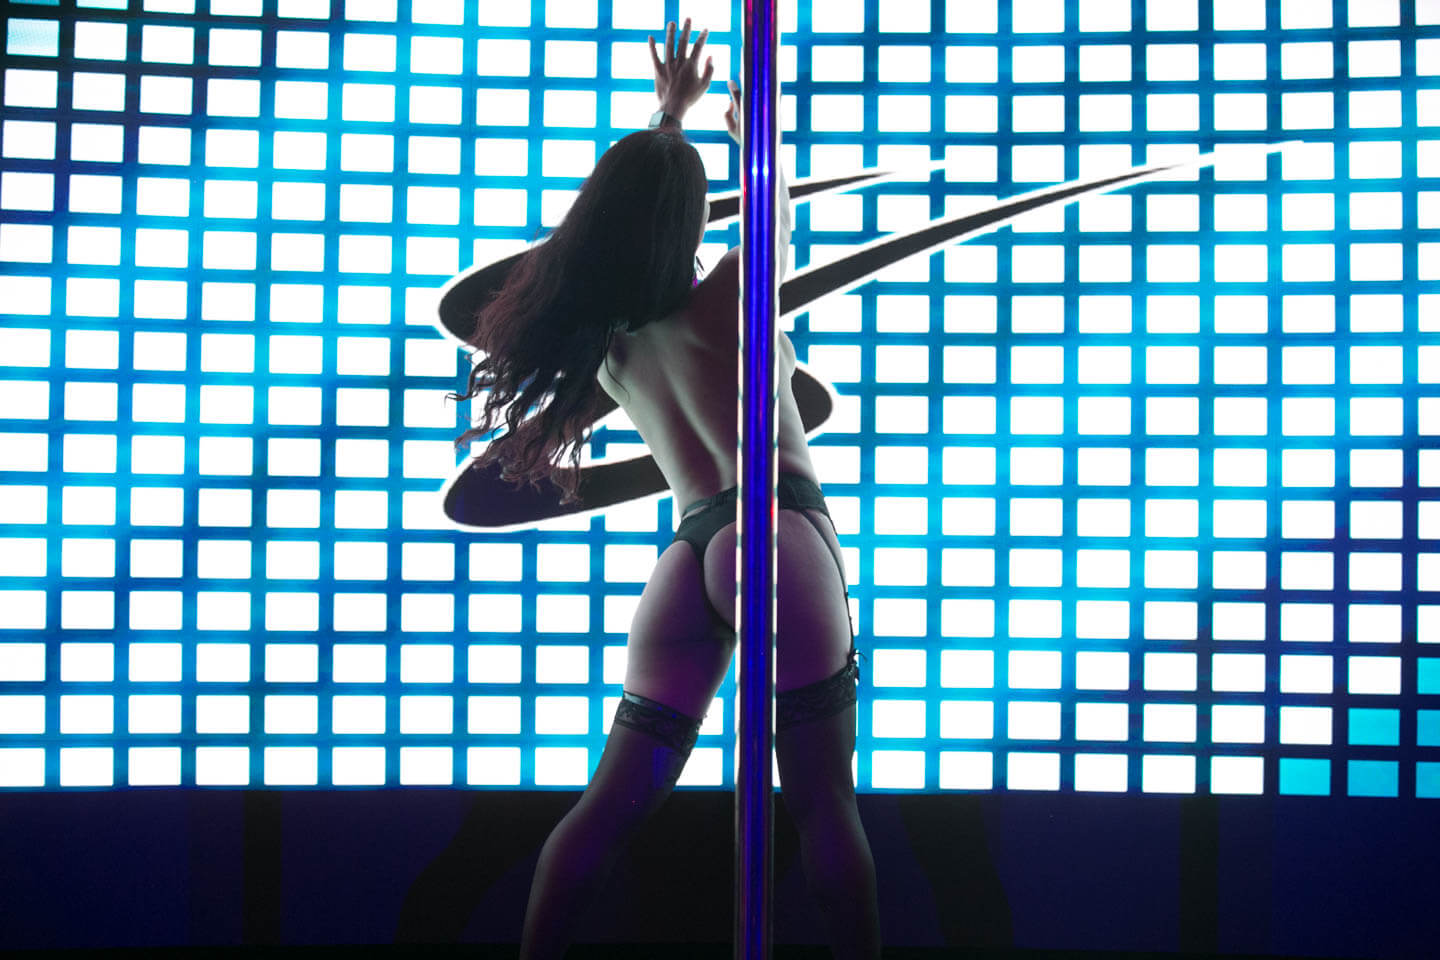 photo of an exotic entertainer on stage grabbing the pole